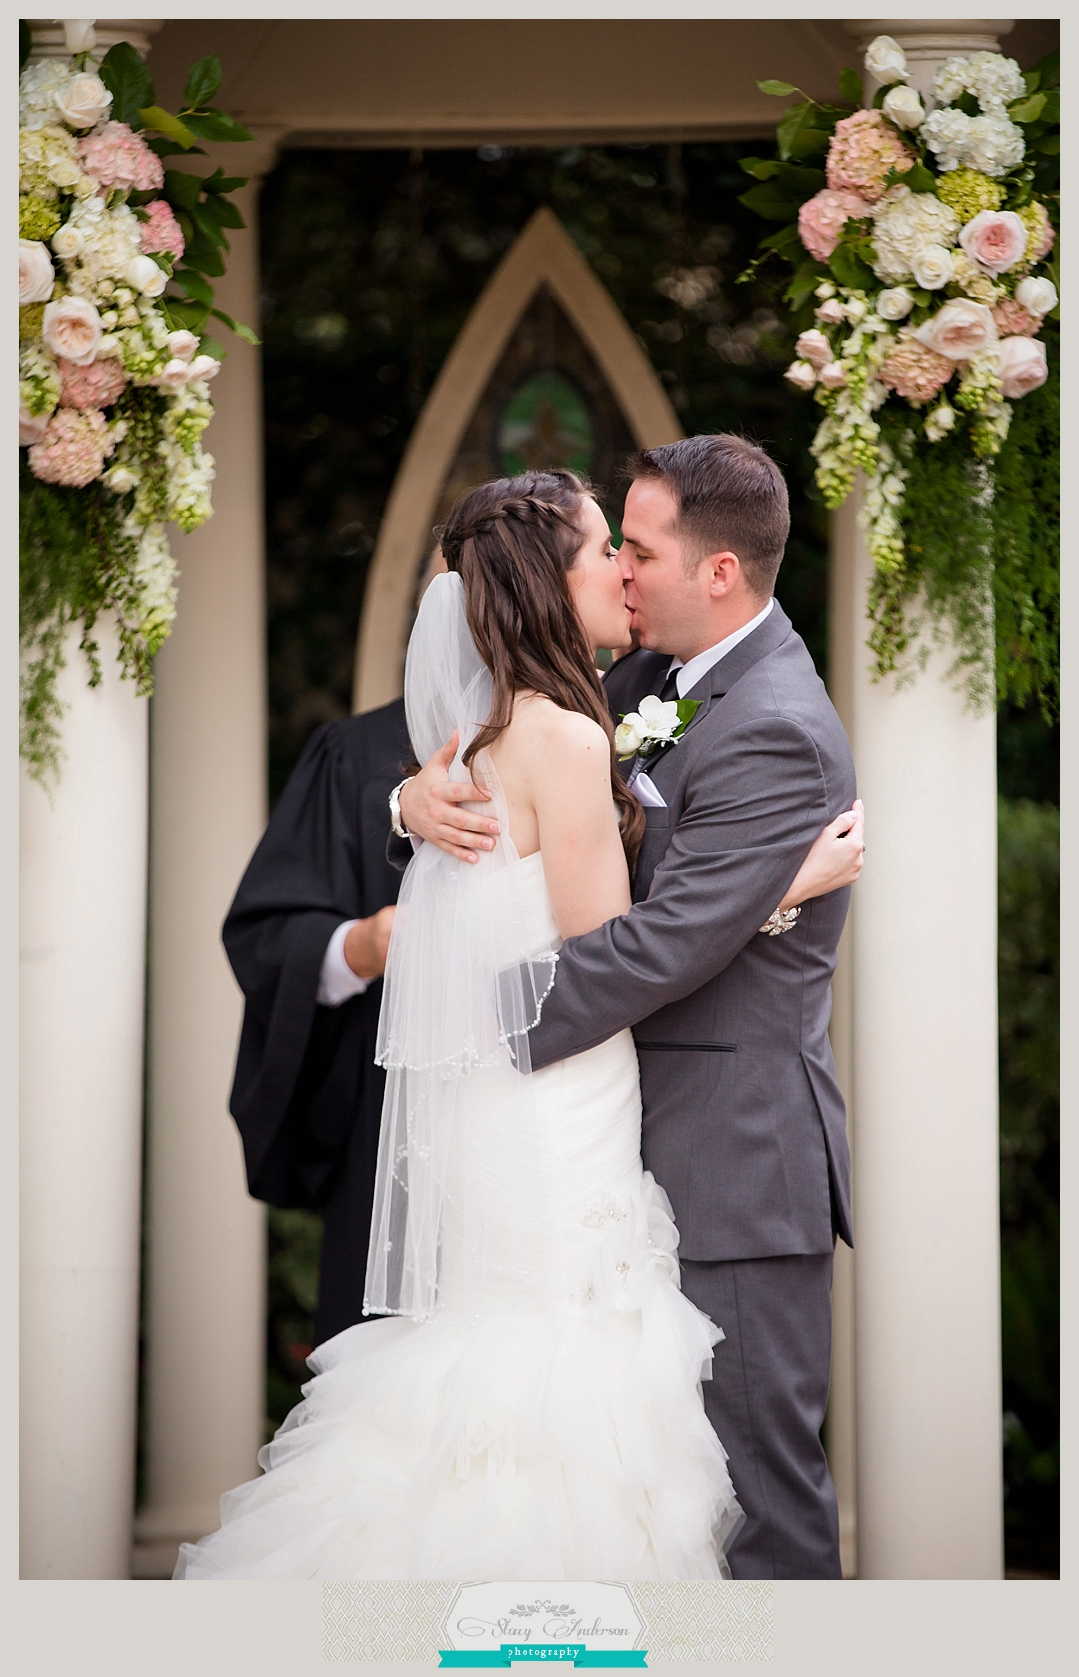 Butler's Courtyard Wedding Photographer (96)